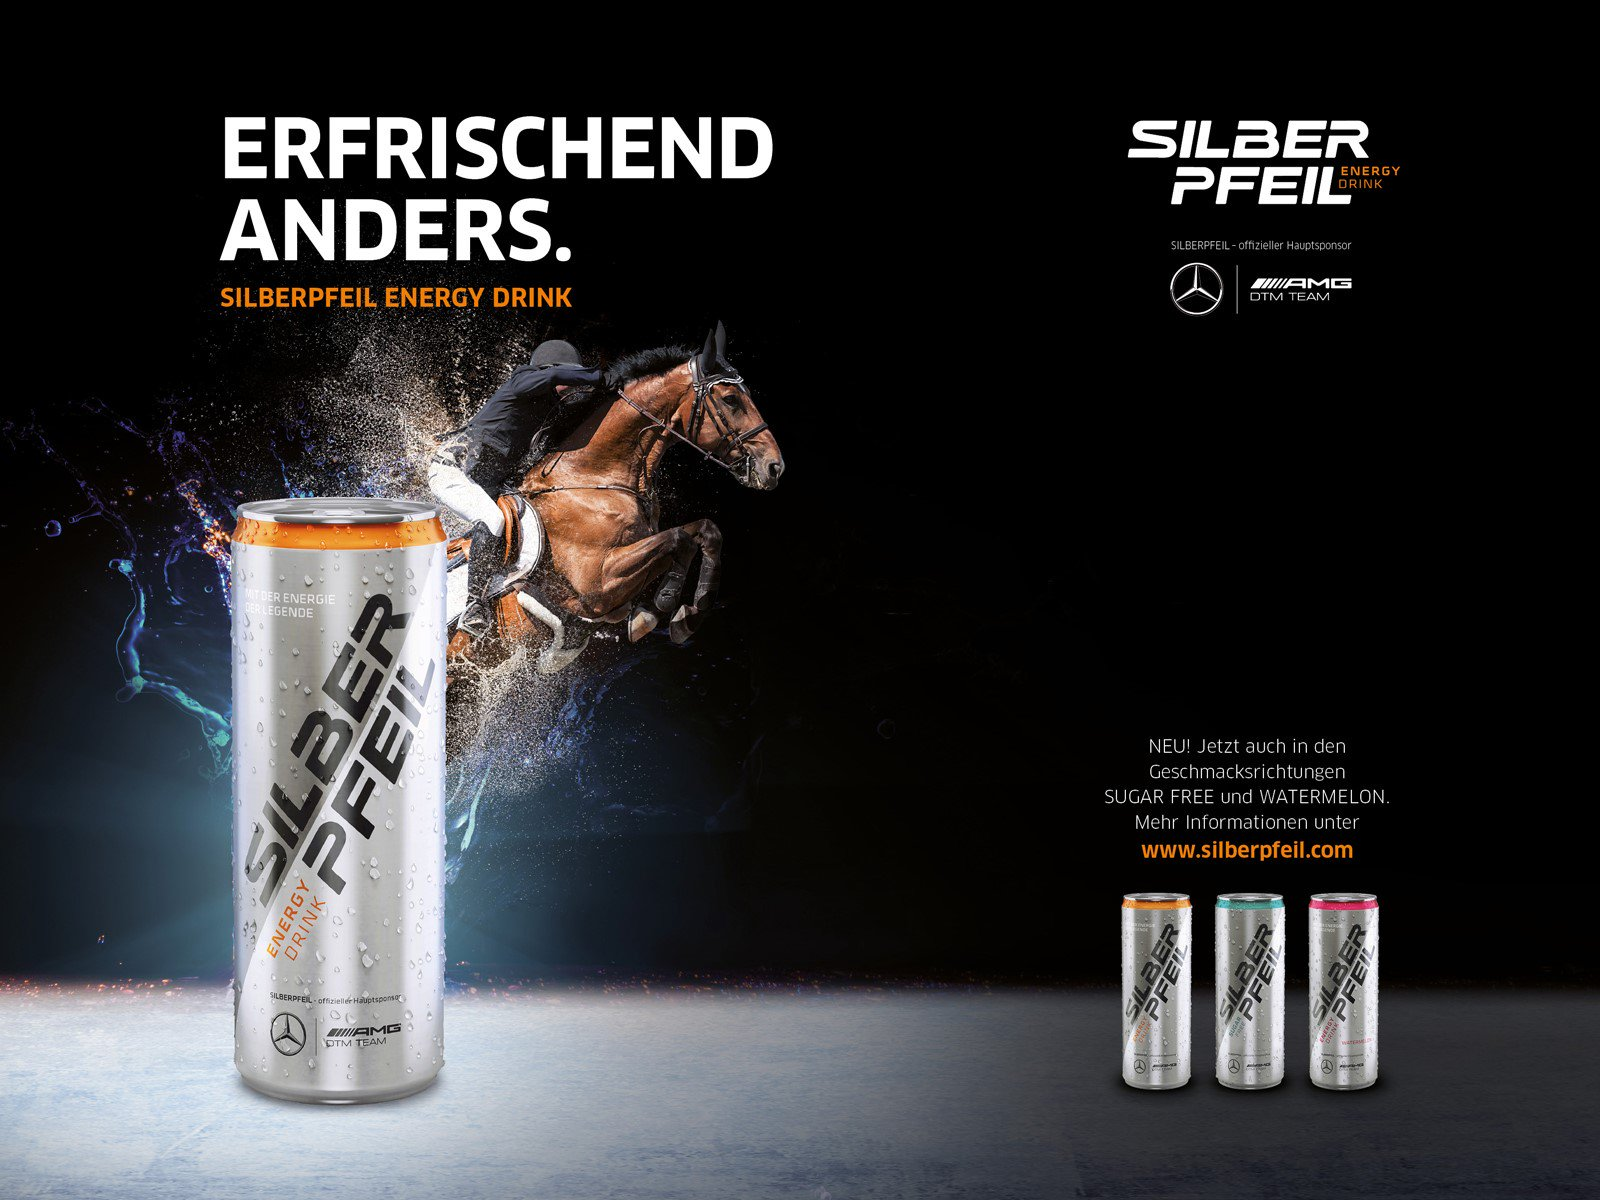 Silberpfeil Energy Drink